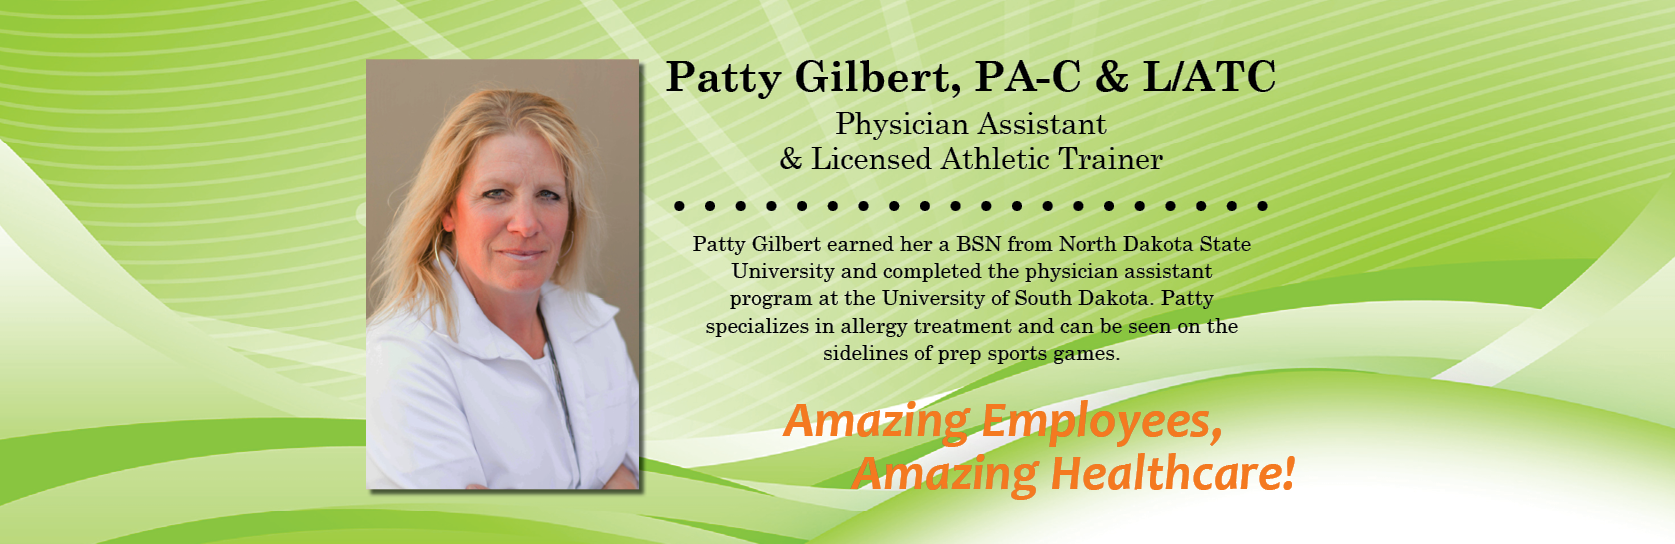 Patty Gilbert